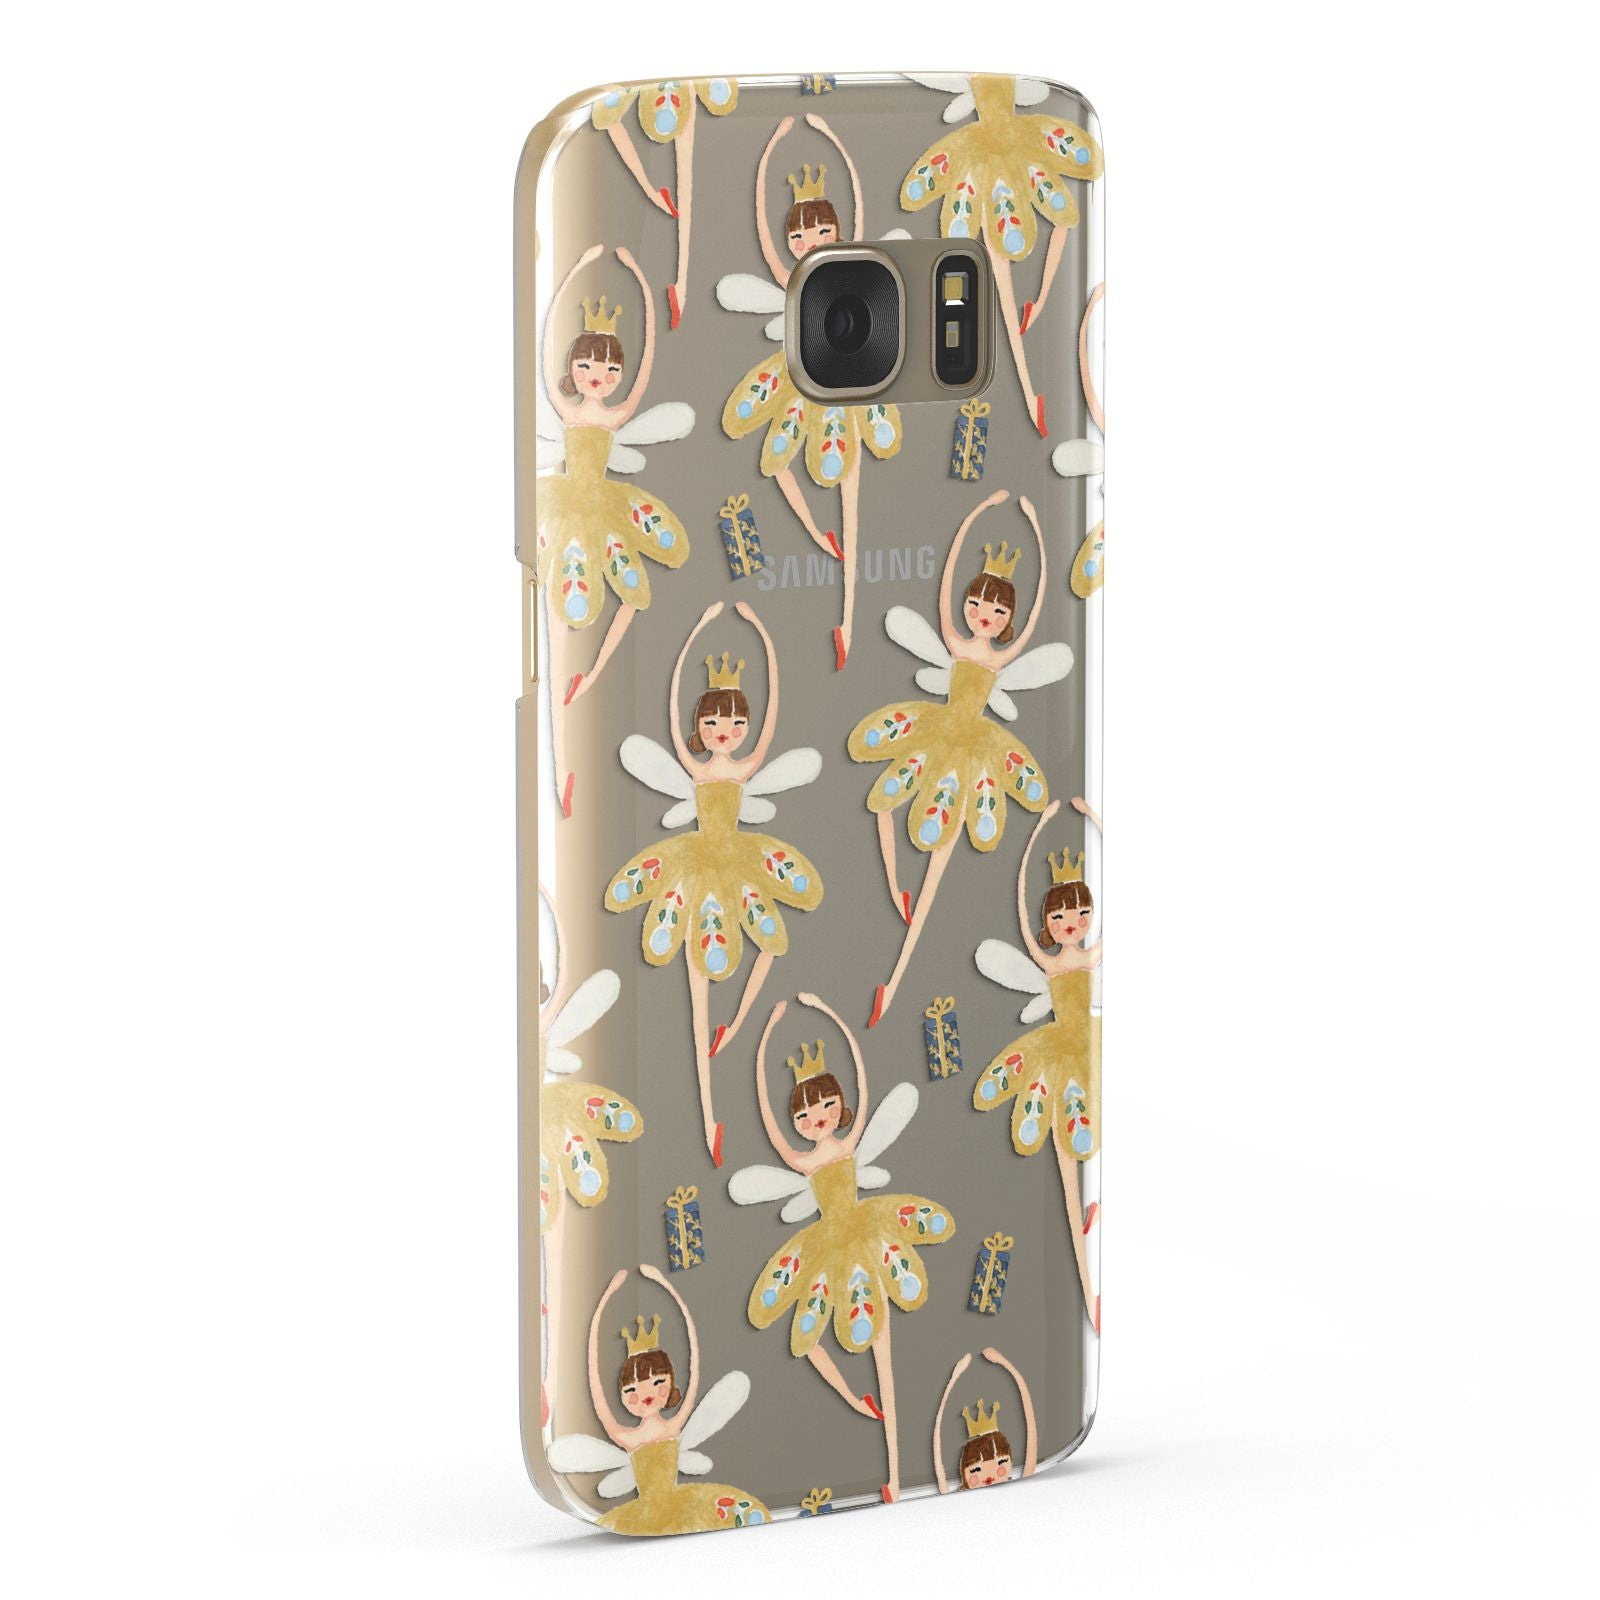 Dancing ballerina princess Samsung Galaxy Case Fourty Five Degrees